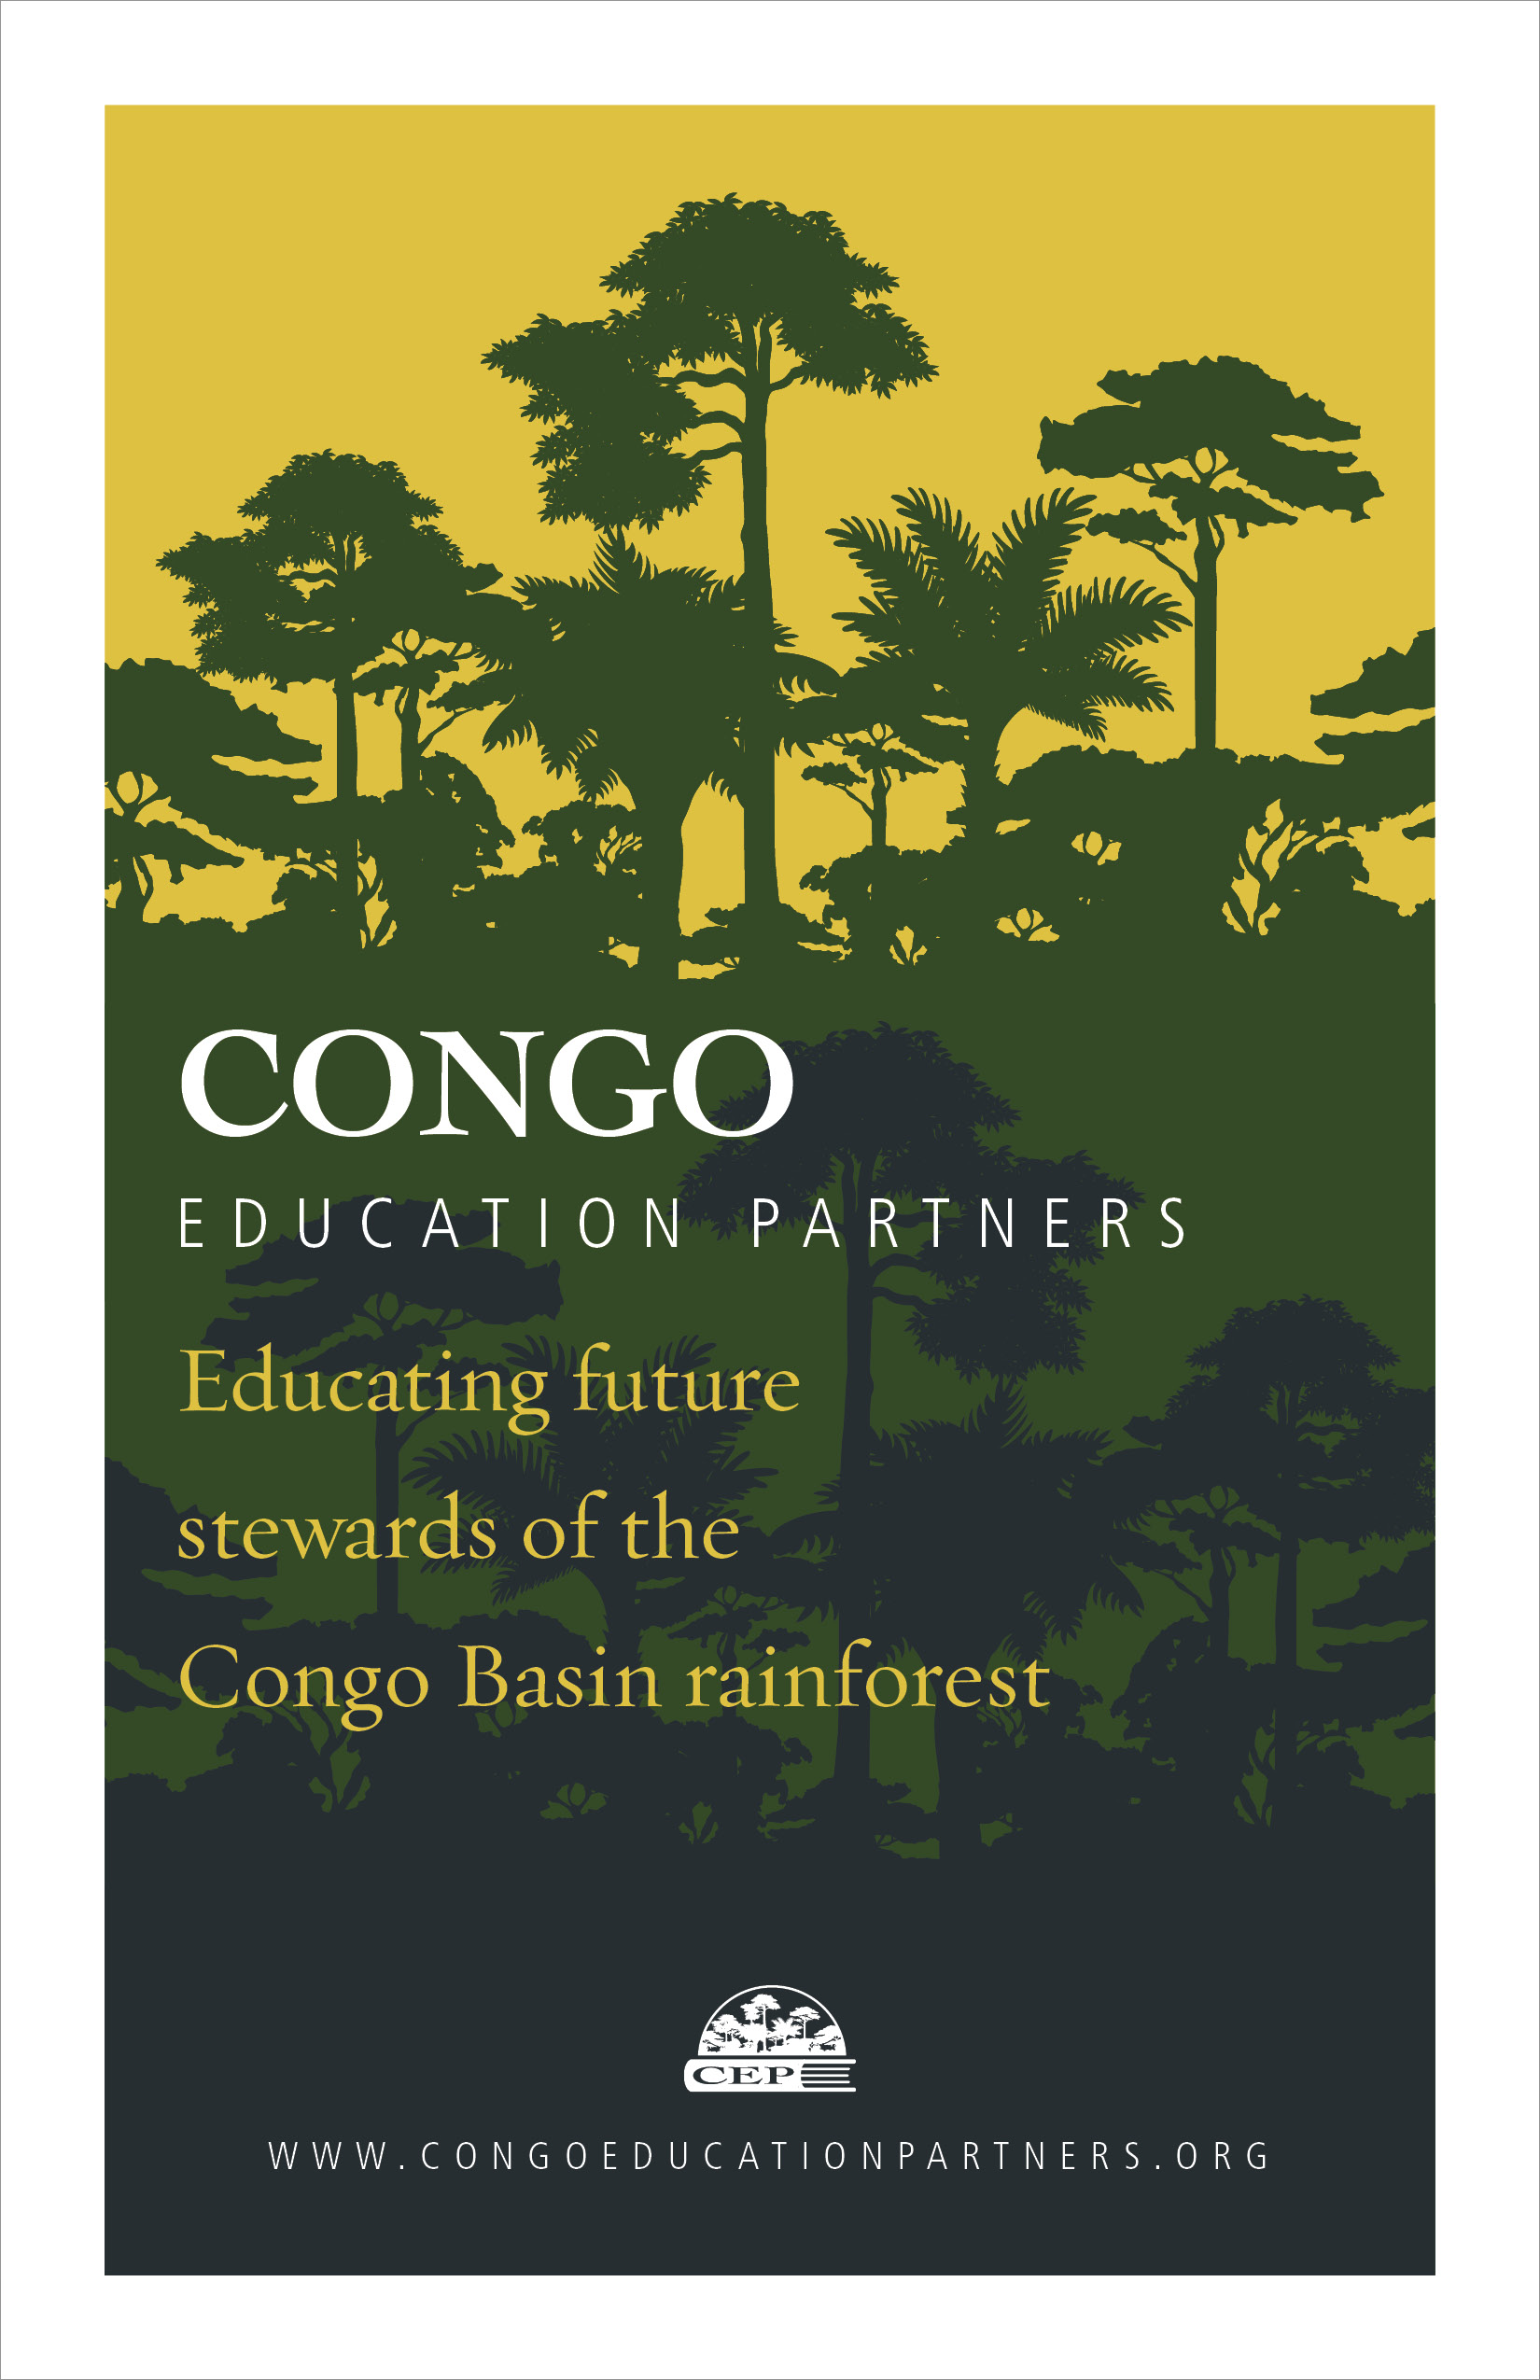 Congo Education Partners